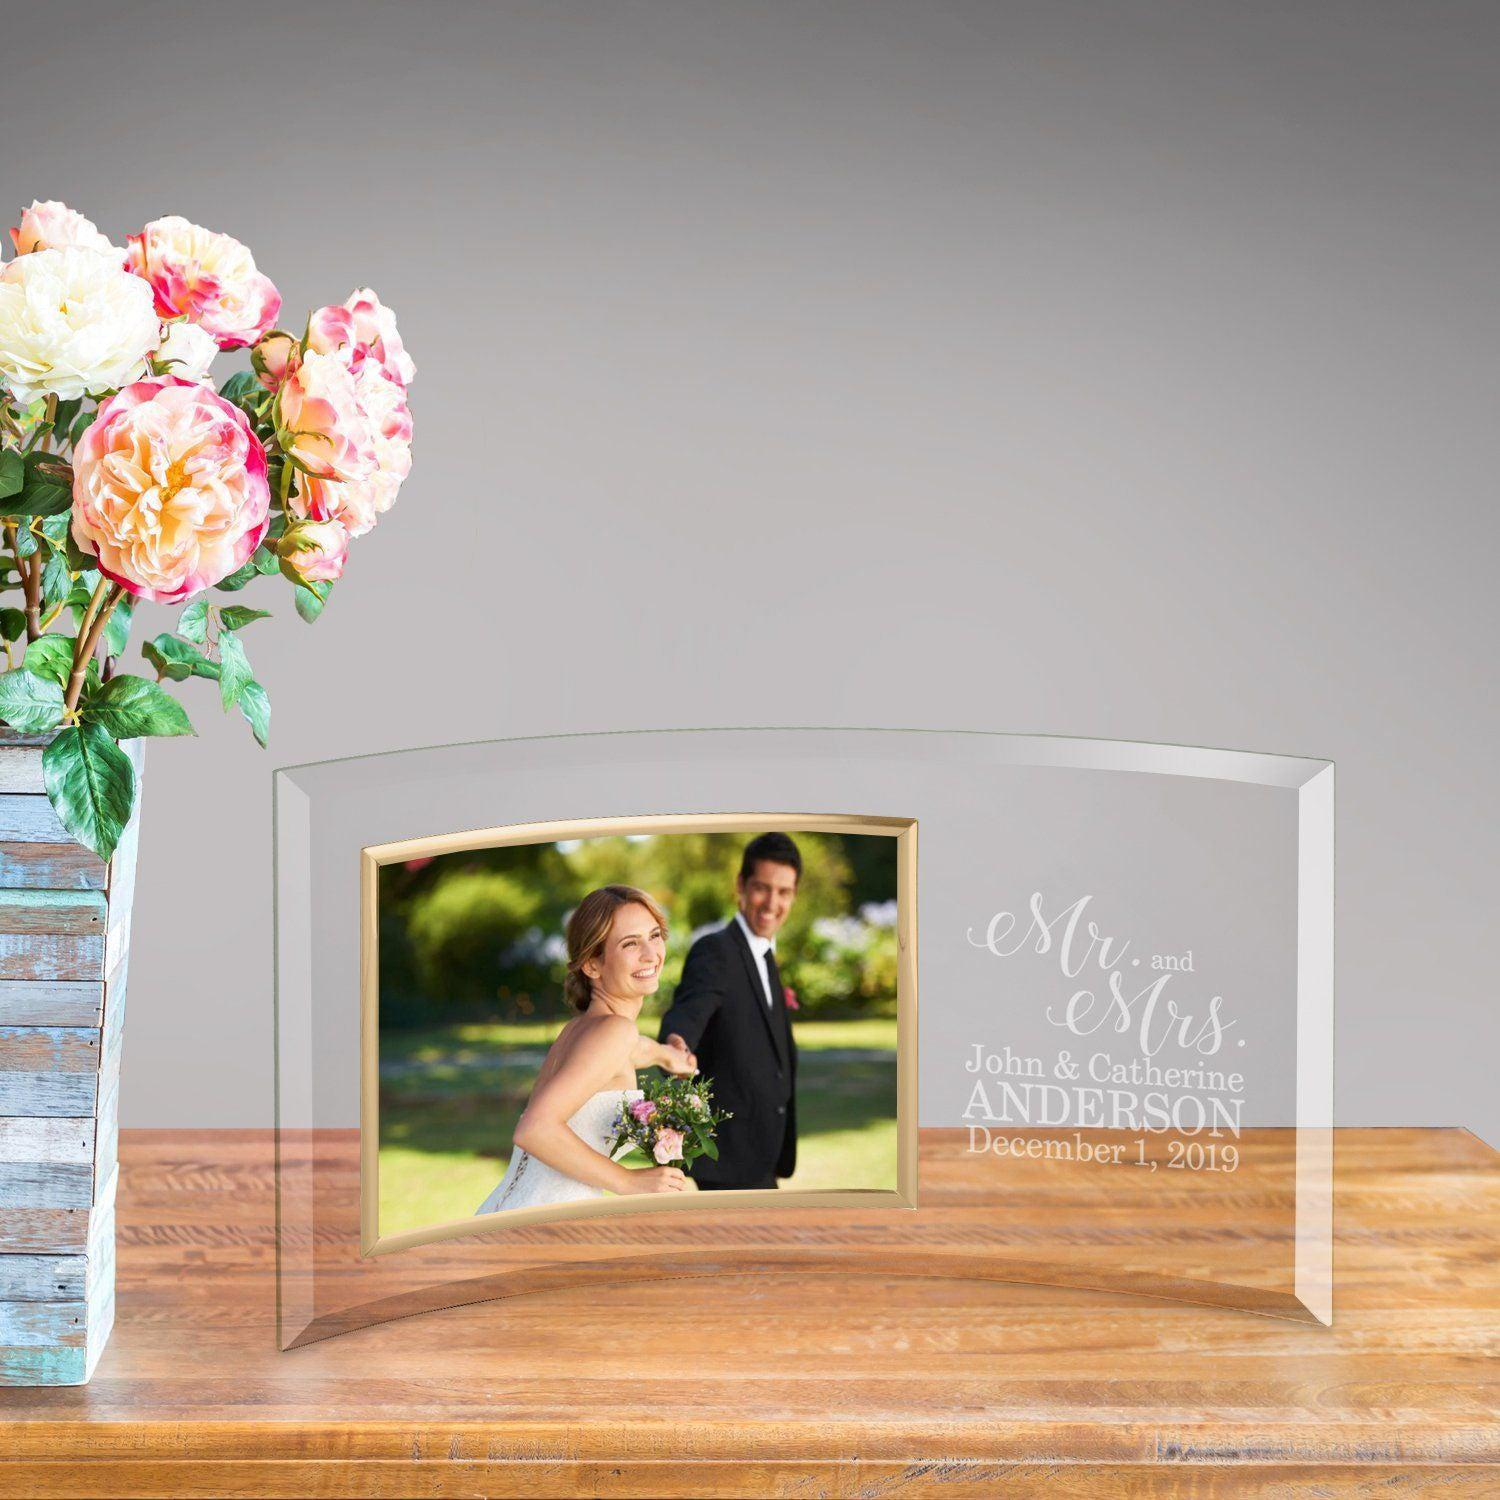 Personalized Mr. & Mrs. Glass Photo Frame